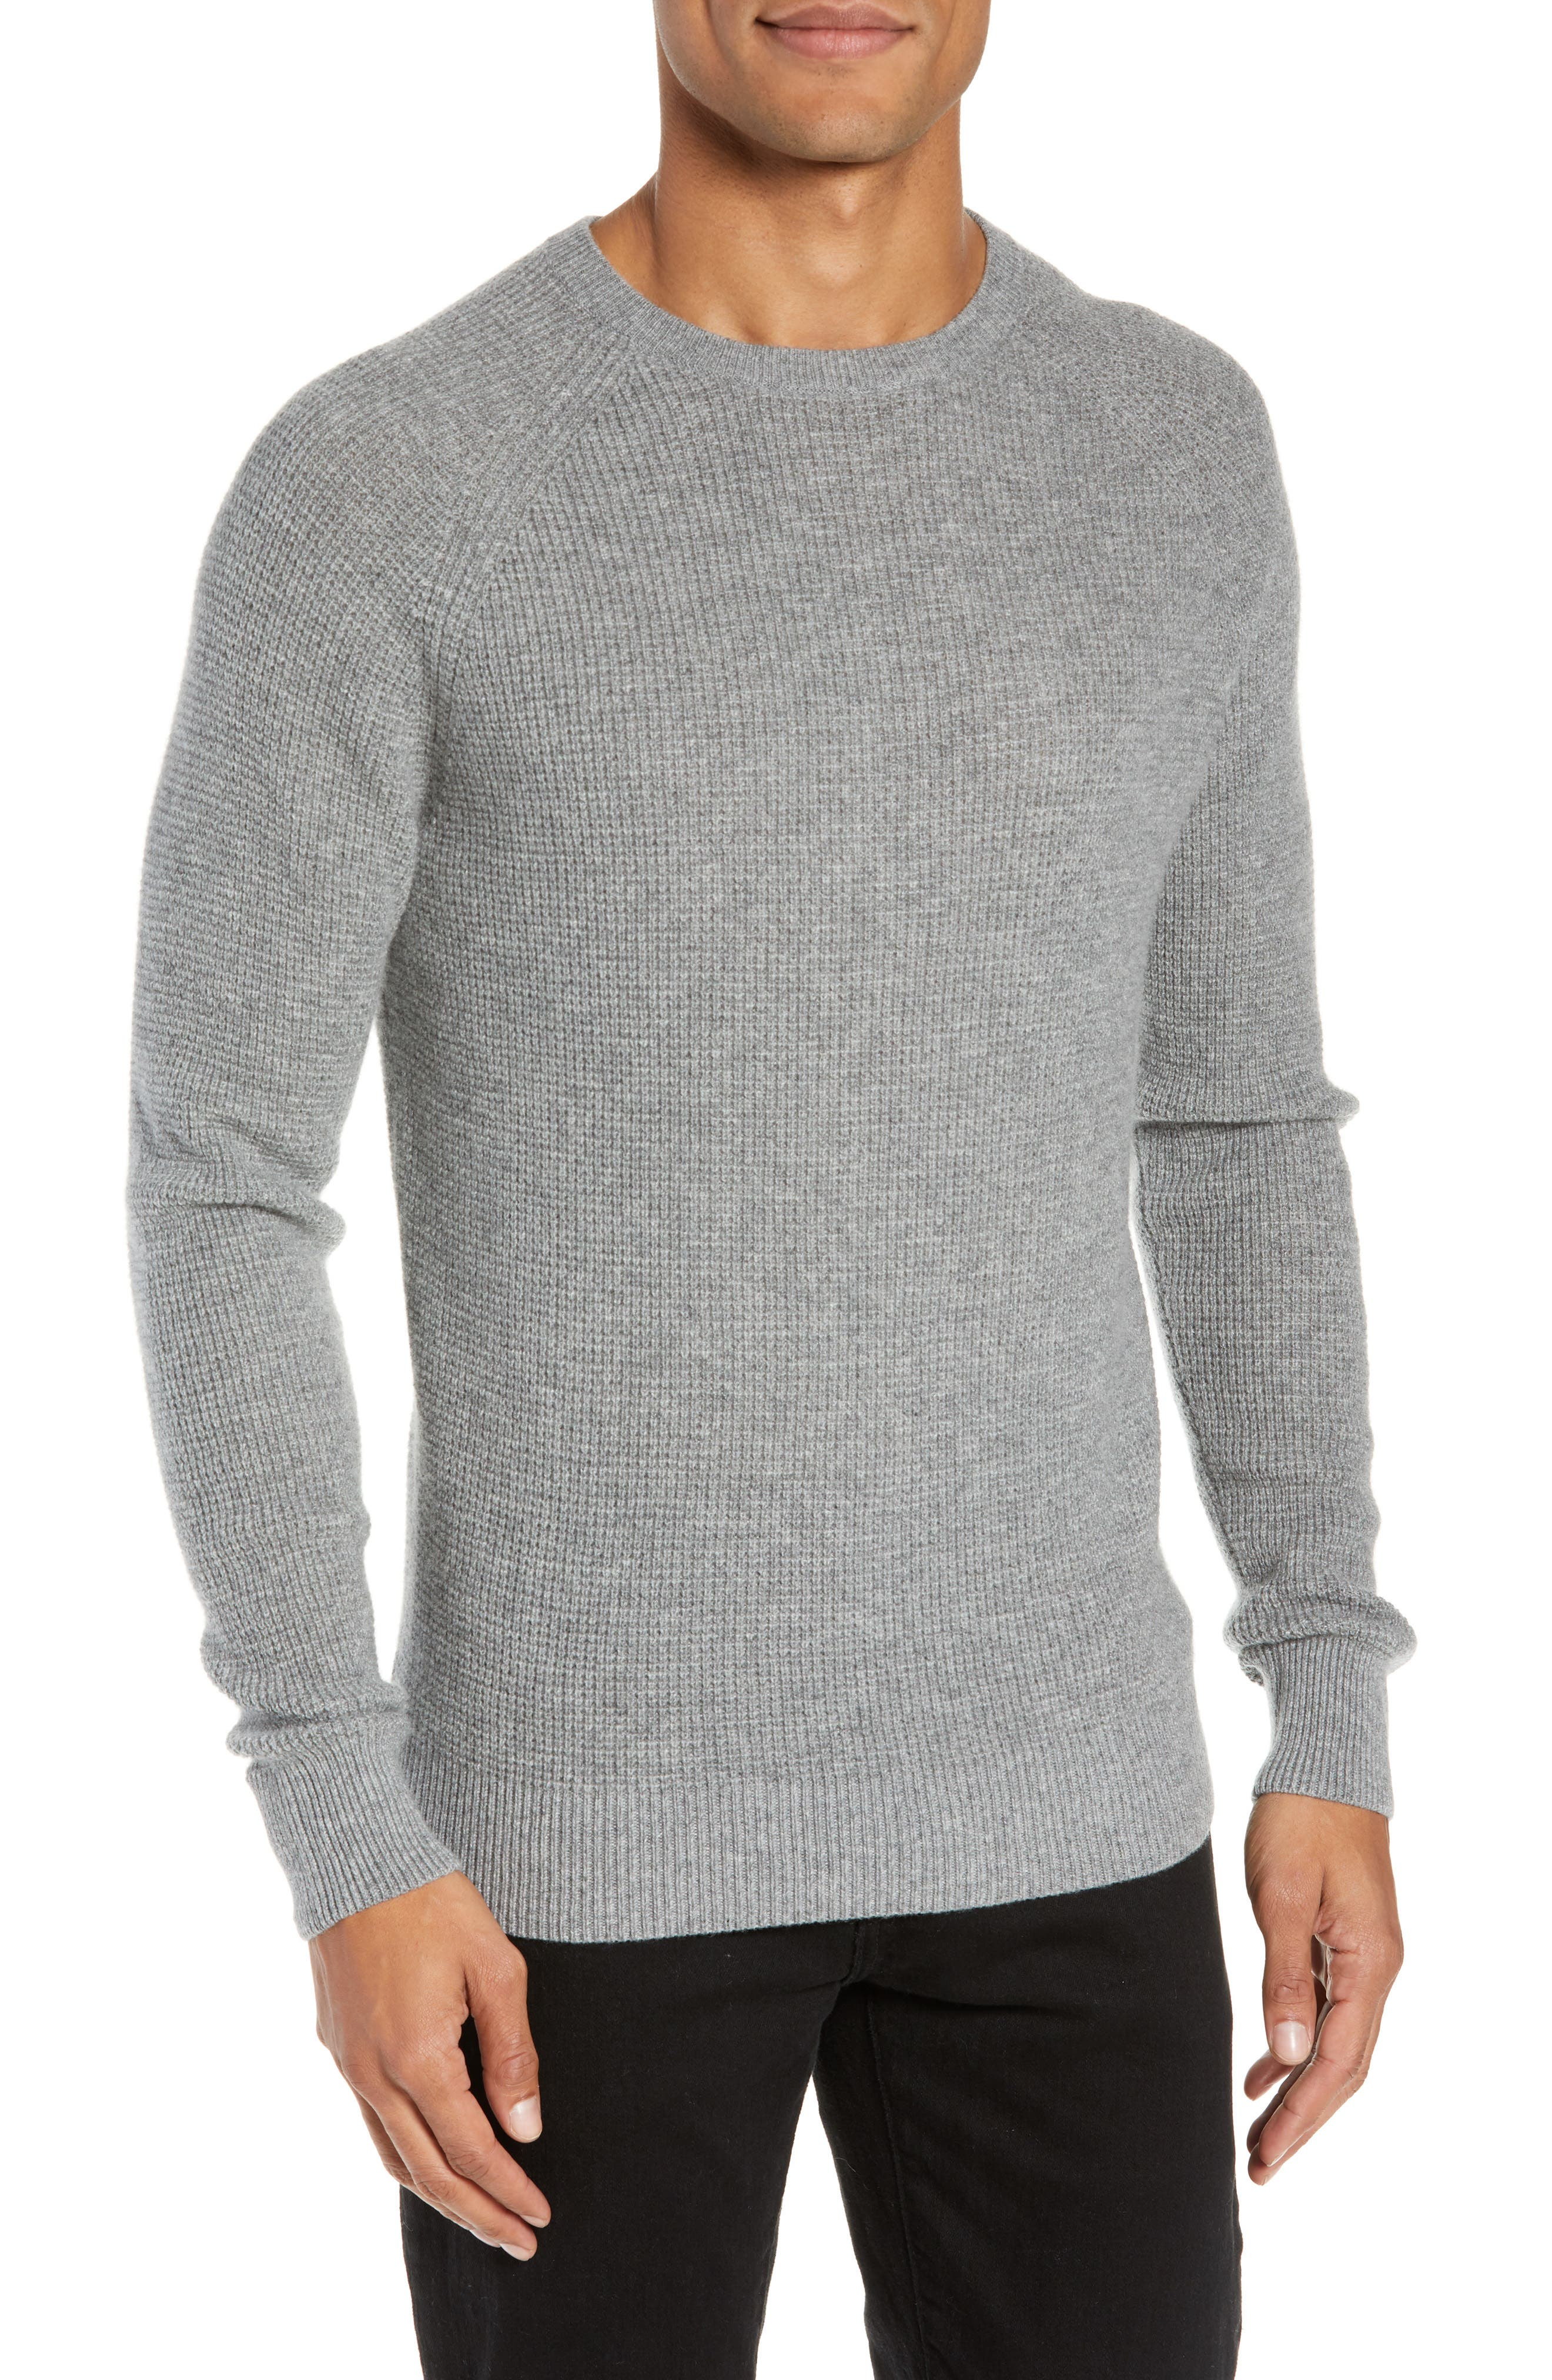 Cashmere Waffle Knit Pullover,                             Main thumbnail 1, color,                             GREY FILIGREE